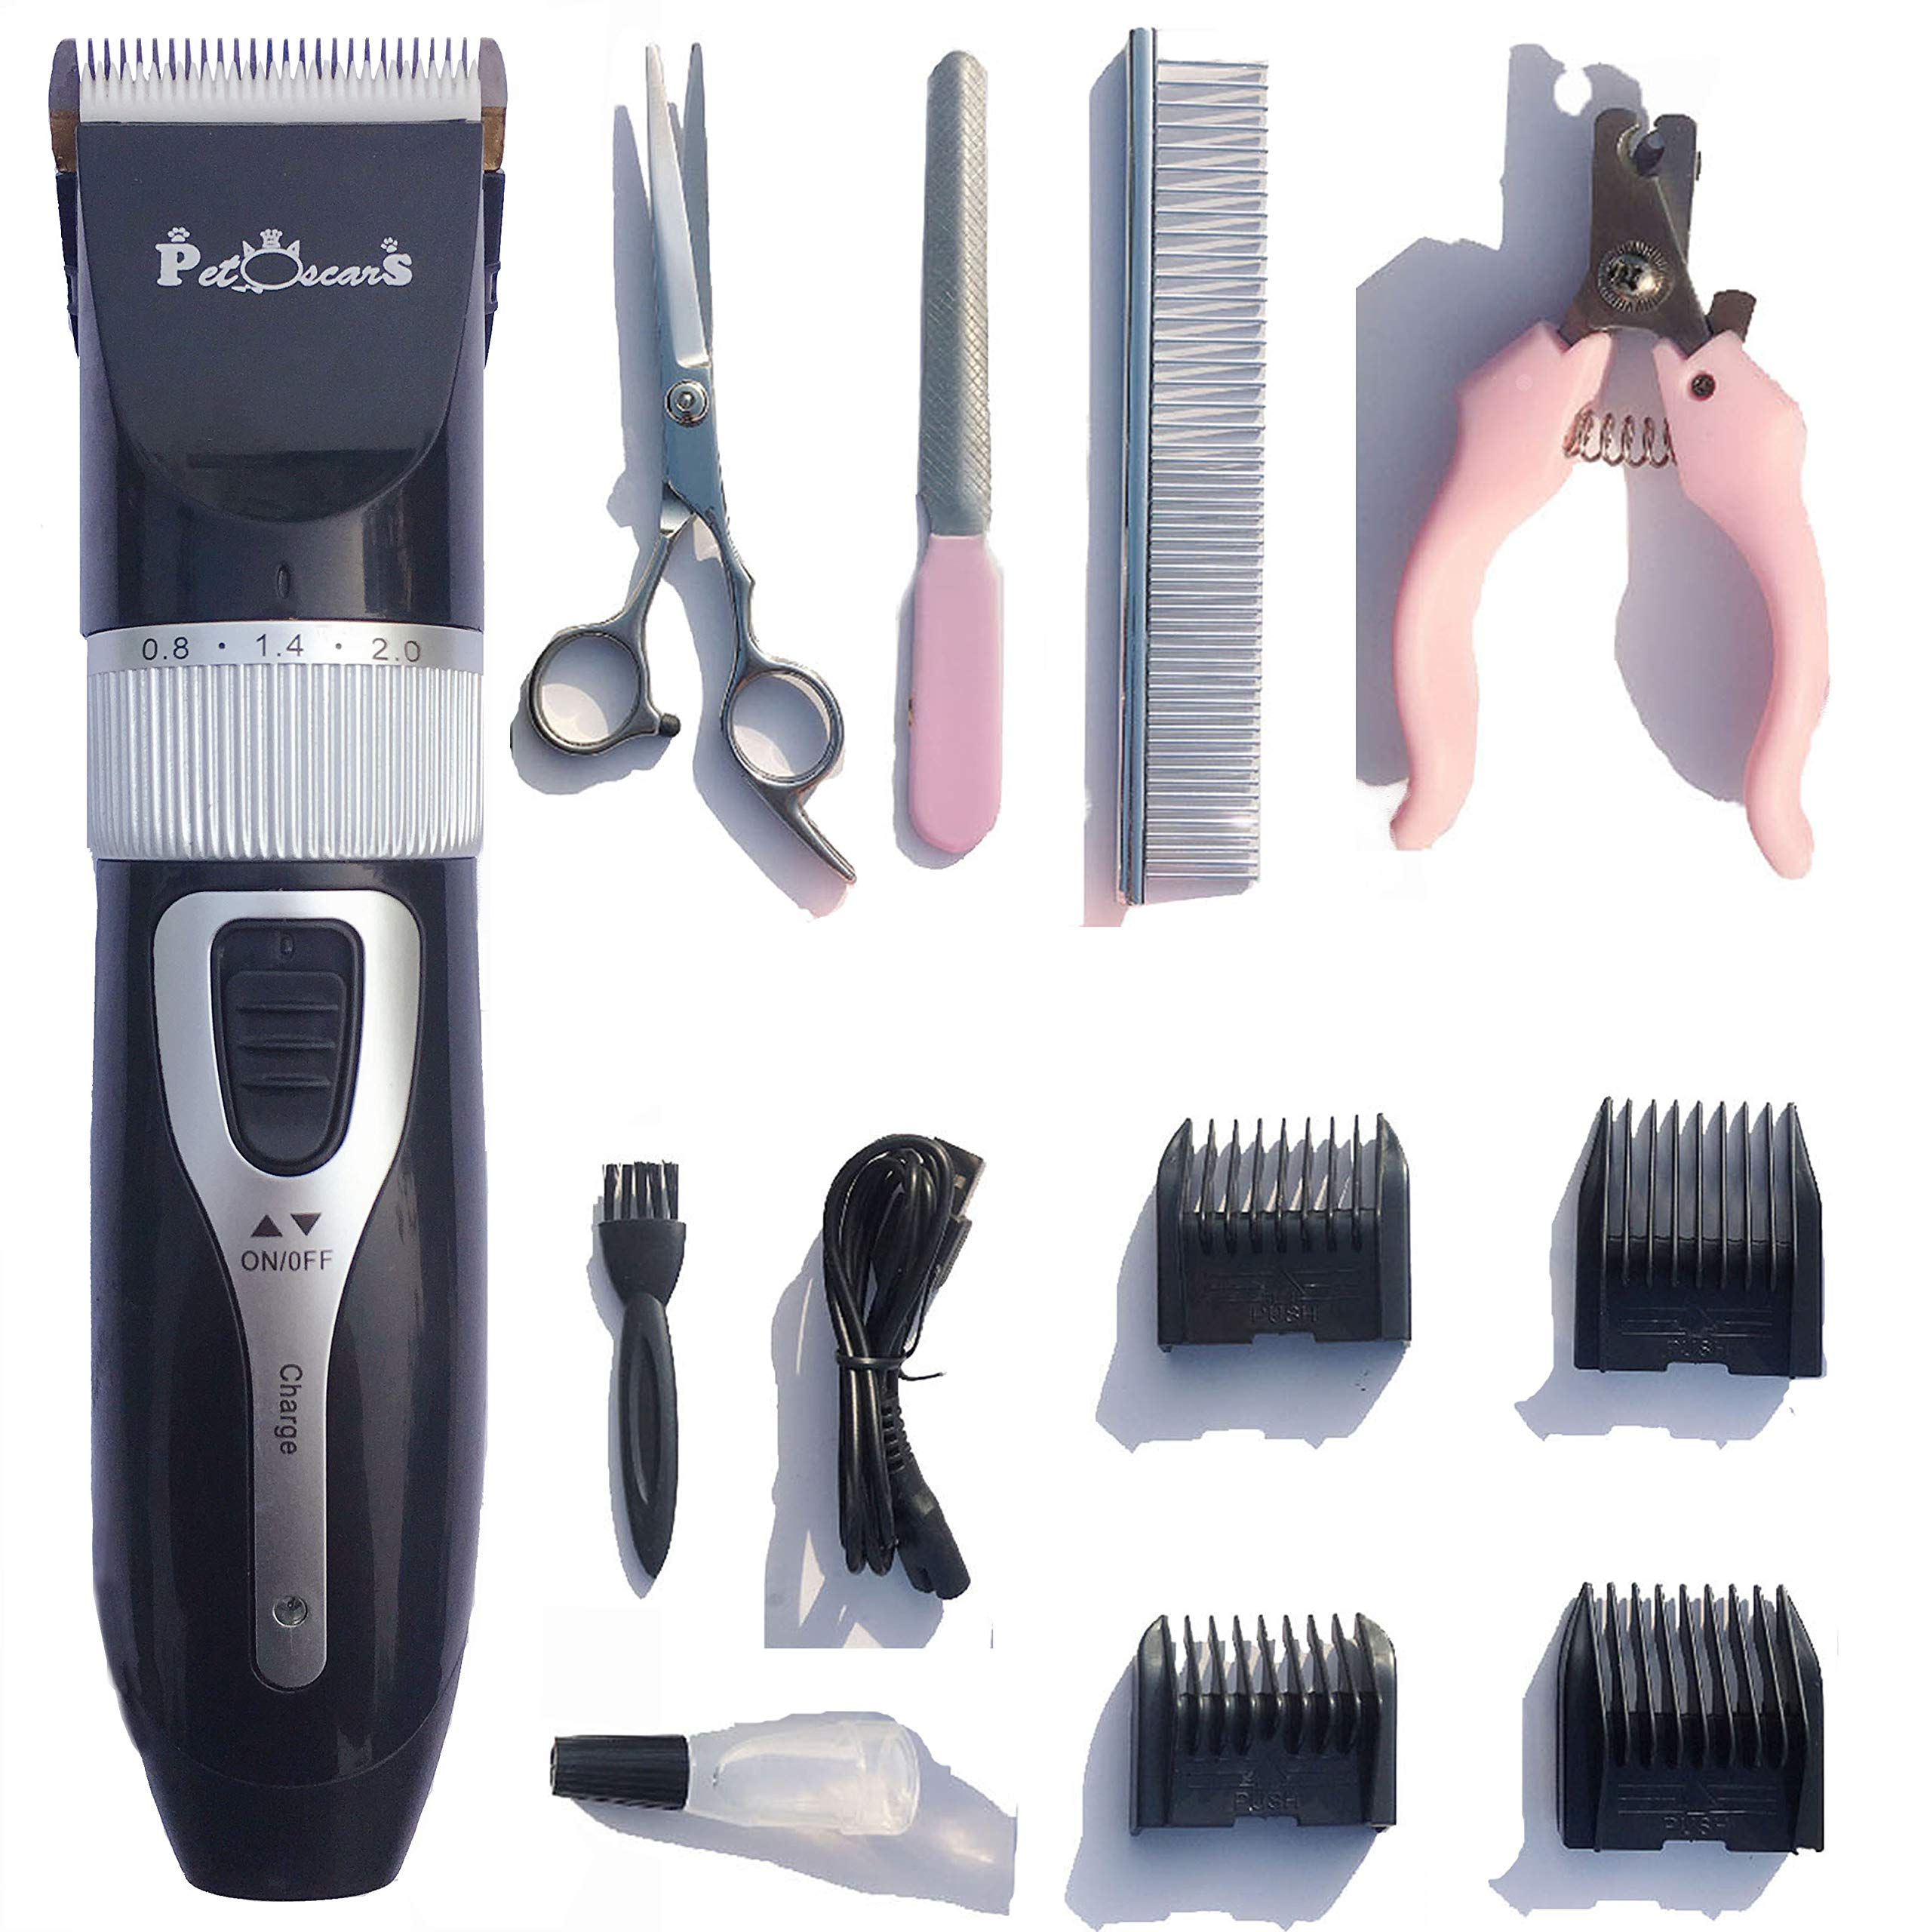 PetOscars Dog Grooming Kit Professional - Quiet Electric Clippers, Heavy Duty Shaver, Cordless Hair Shears for Small Dogs, Rabbits and Other Pet (Black)